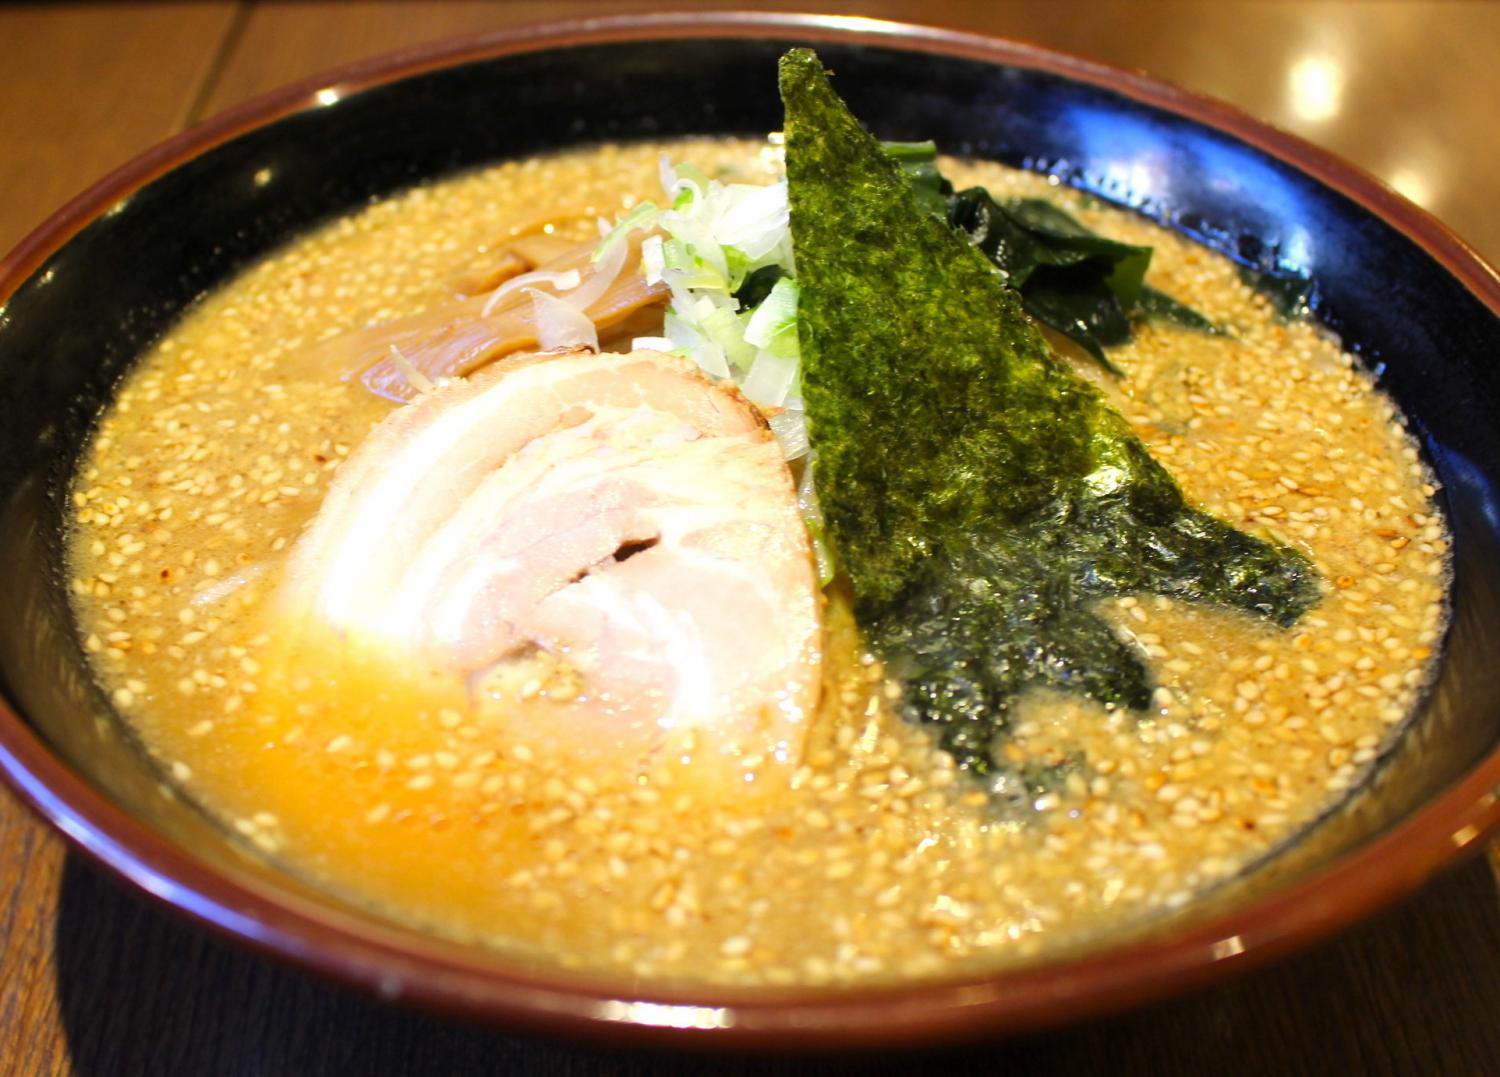 Real raamen Suehiro (breathe Hiro) - sesame and mild ramen - image which onion worked for briskly